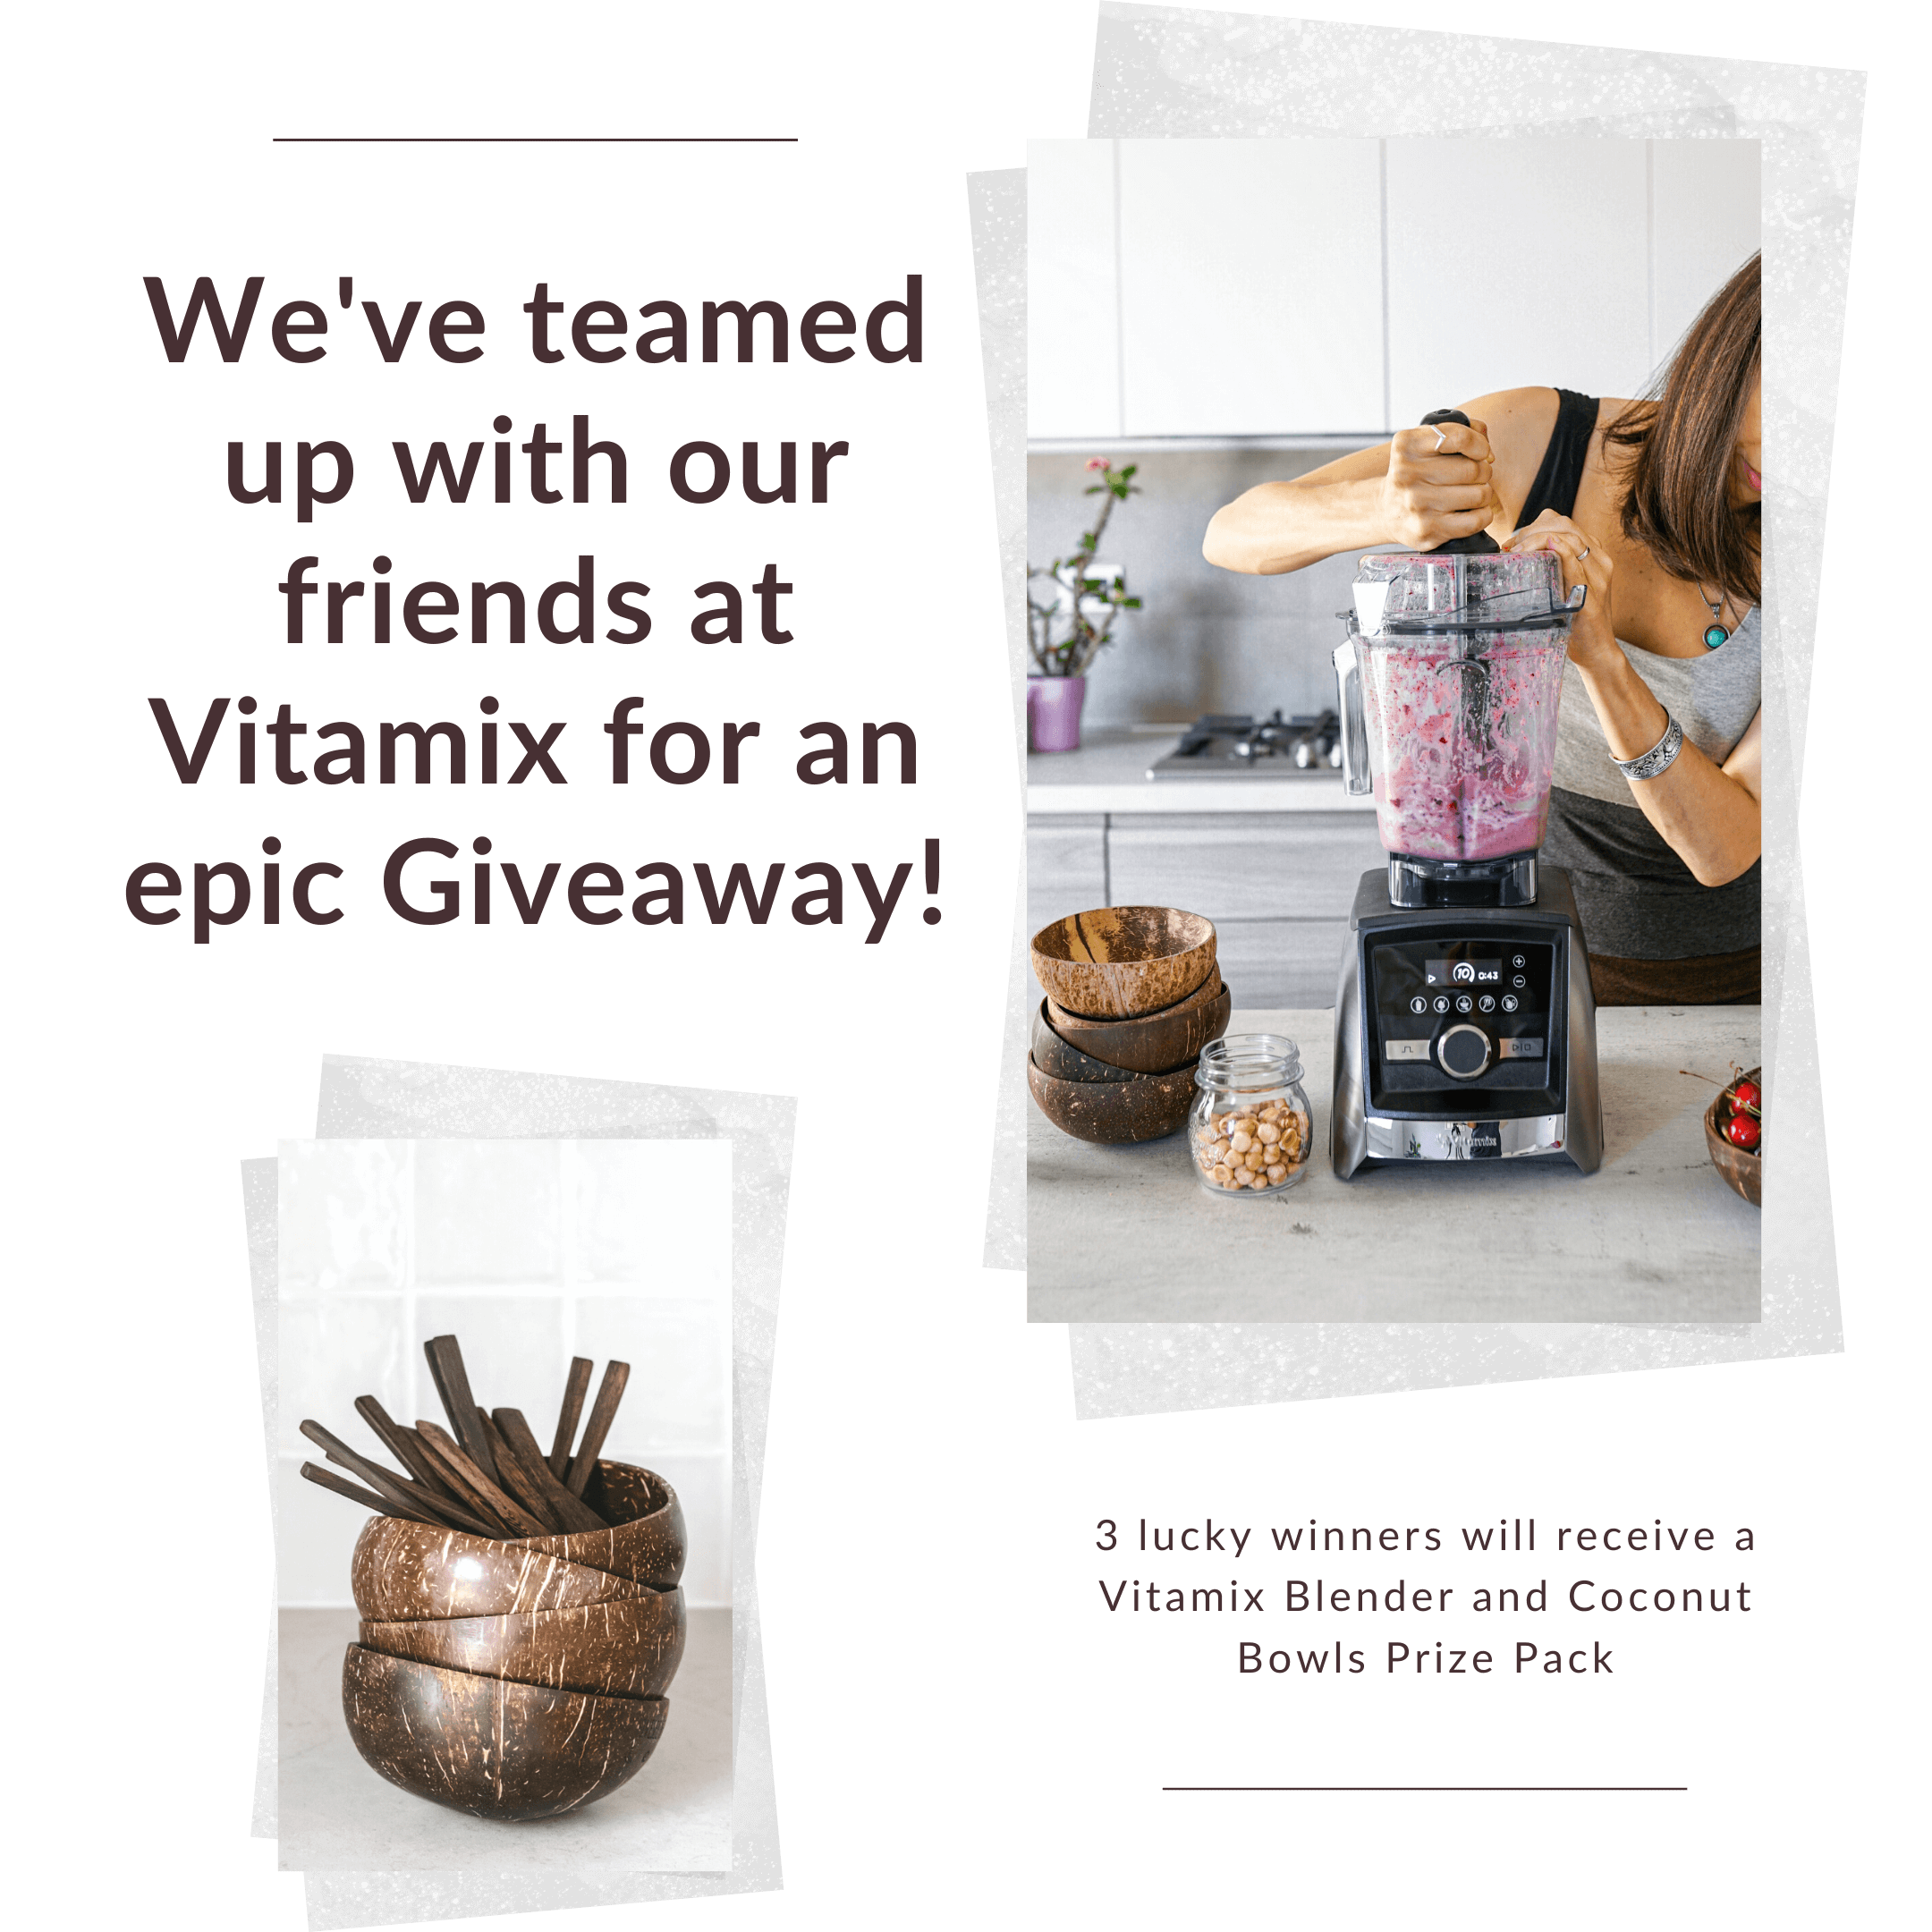 online contests, sweepstakes and giveaways - Coconut Bowls Vitamix Giveaway